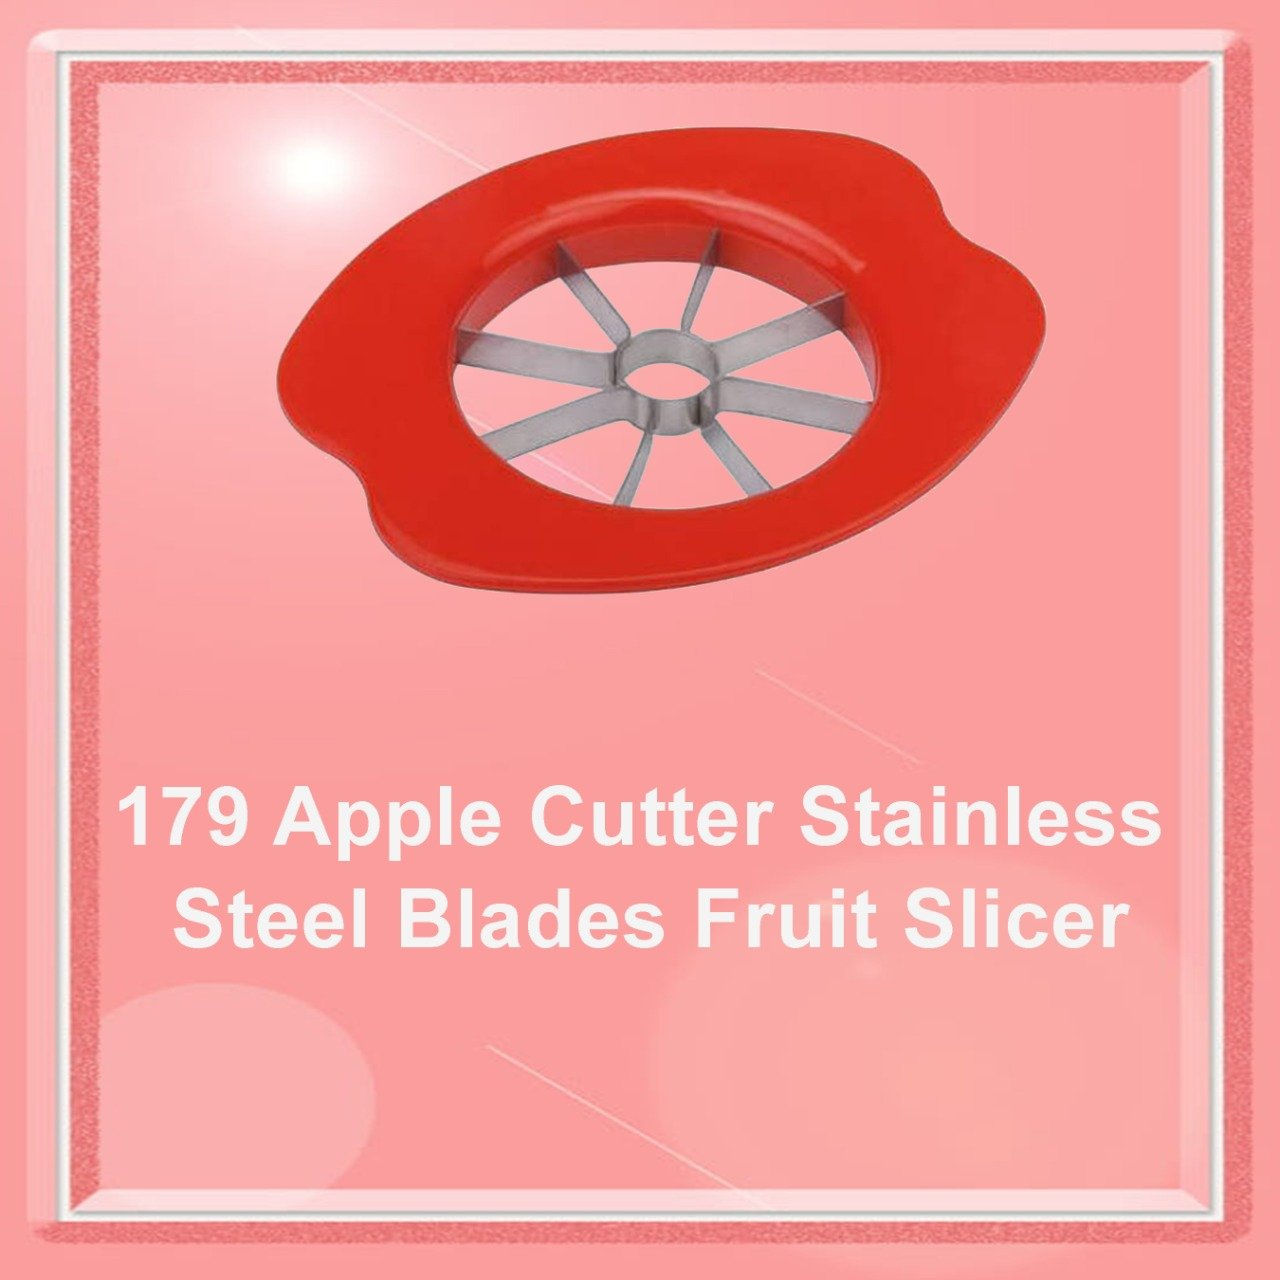 Apple Cutter Stainless Steel Blades Fruit Slicer